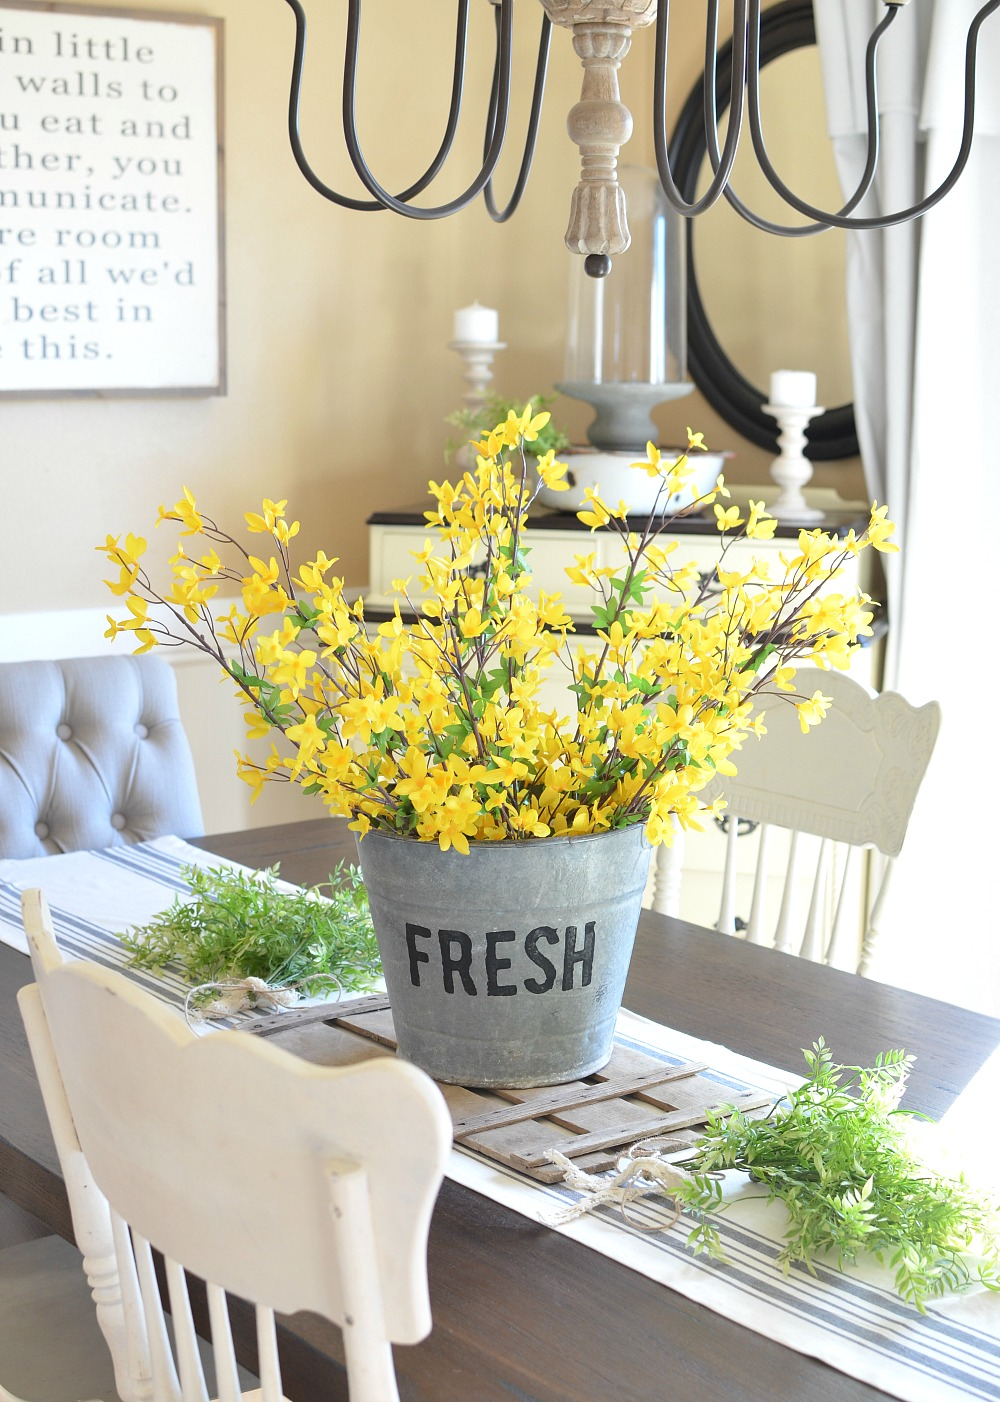 Diy Spring Decor: 20+ Farmhouse Spring Decor Ideas